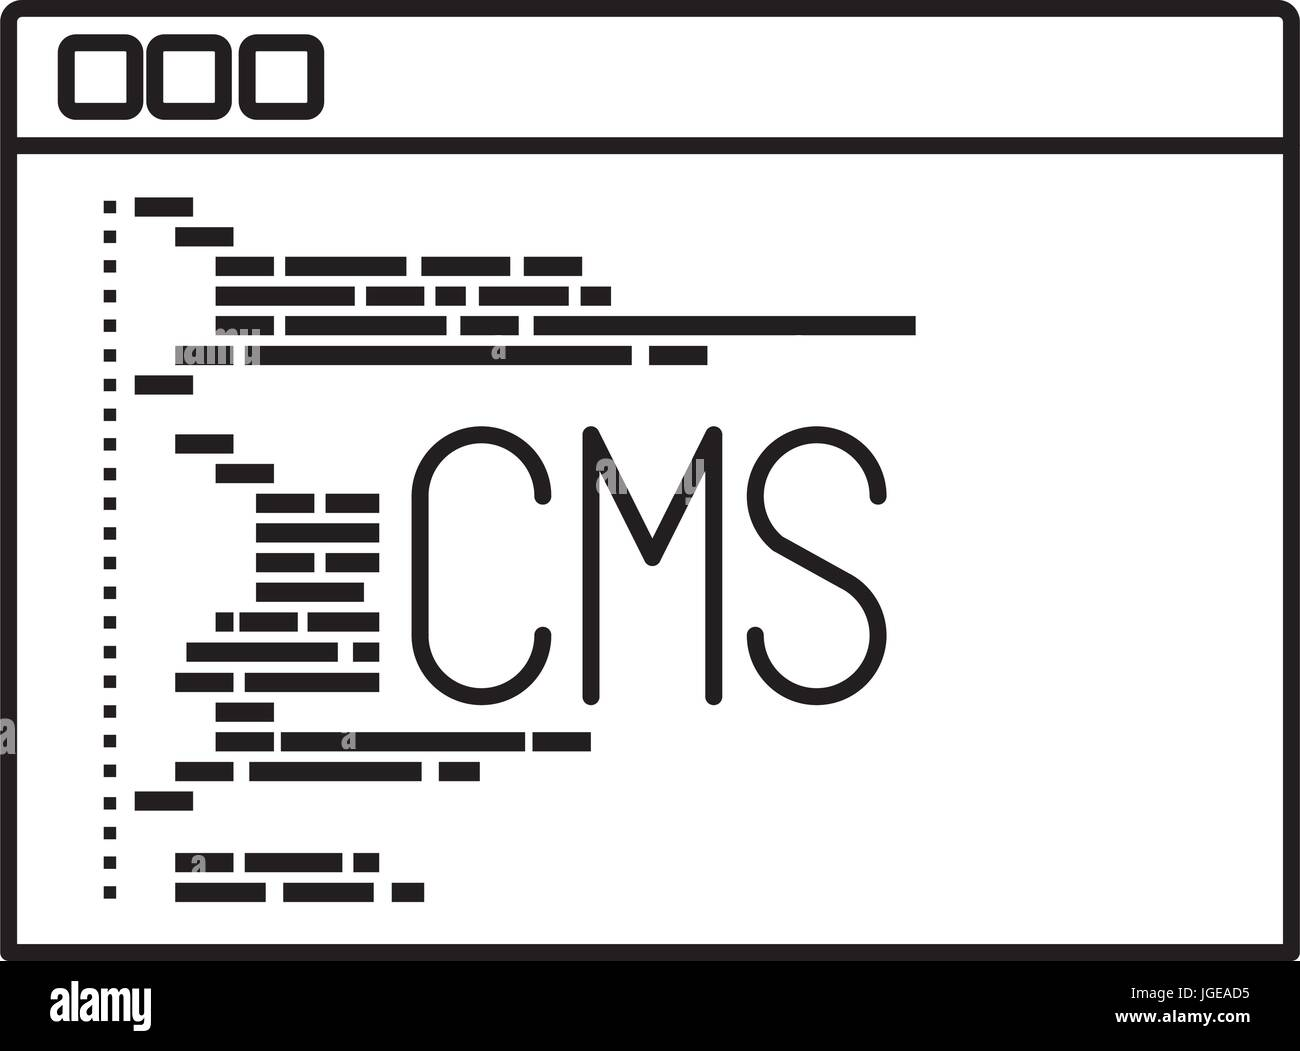 Cms Script Monochrome Silhouette Of Programming Window With Script Code Cms